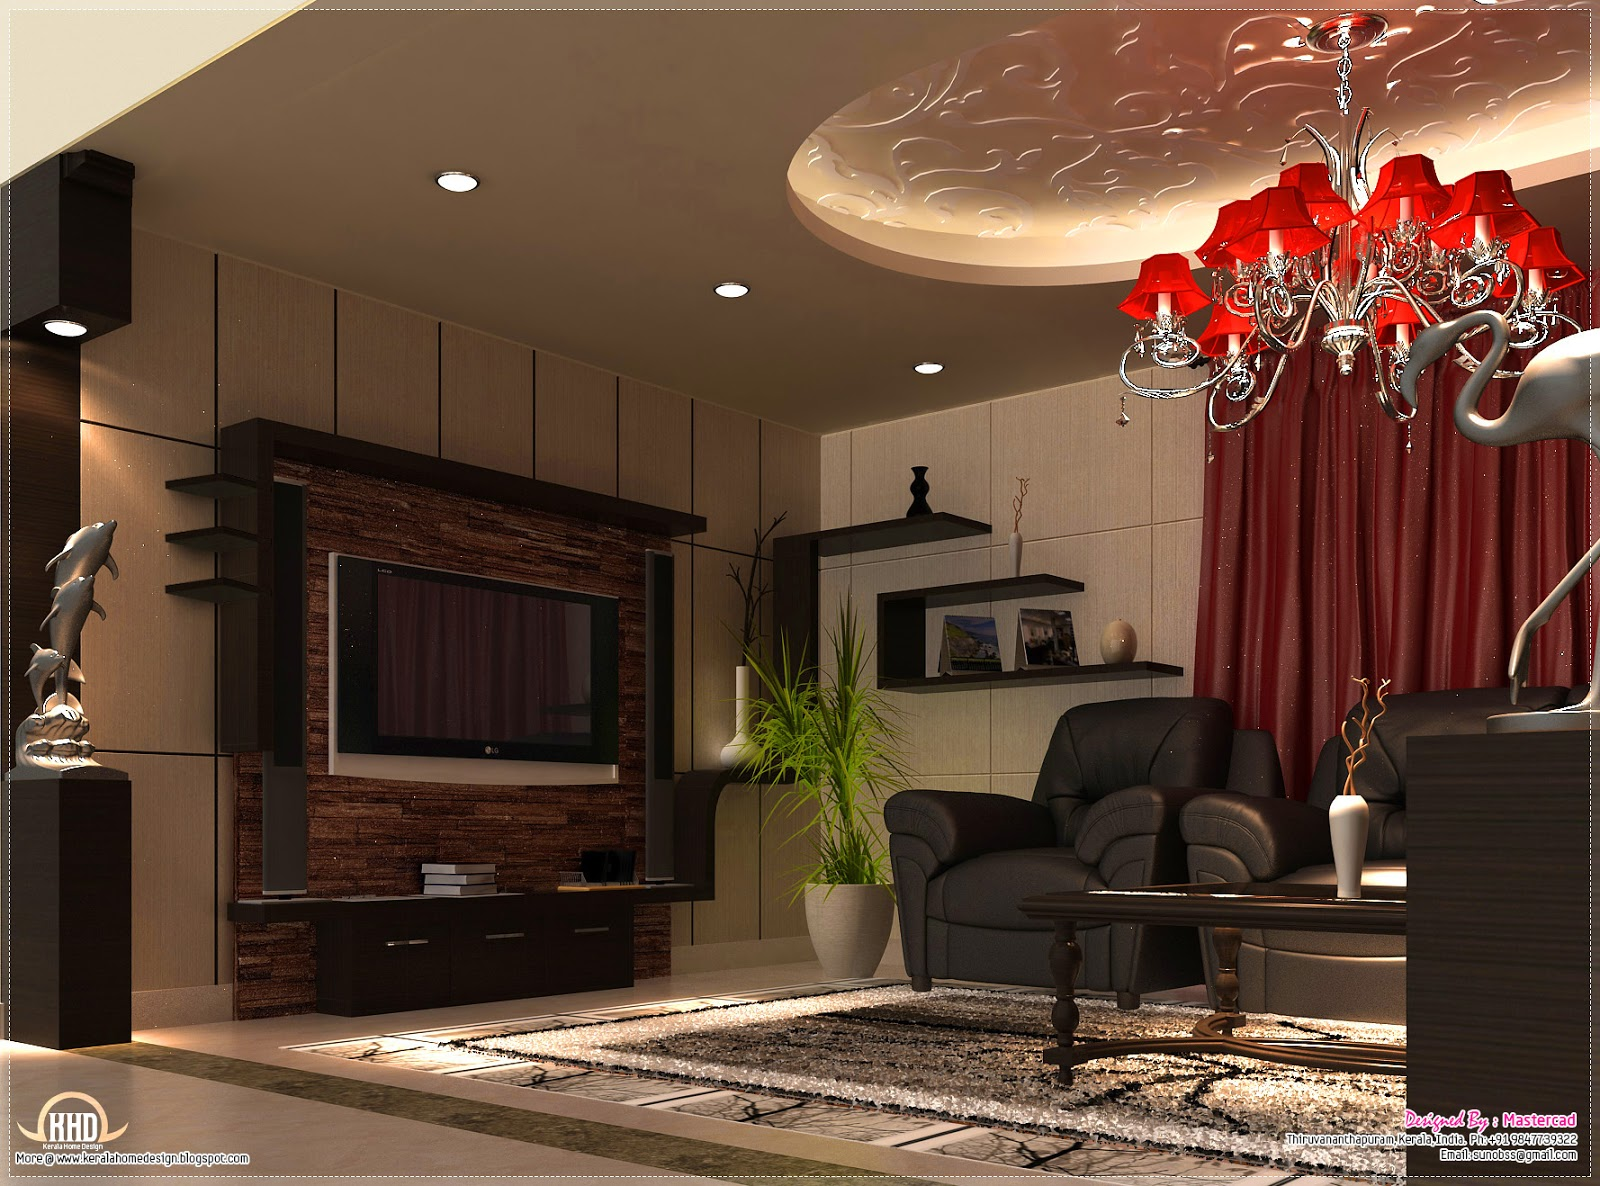 Interior Design Ideas For Living Rooms: Kerala Home Design And Floor Plans